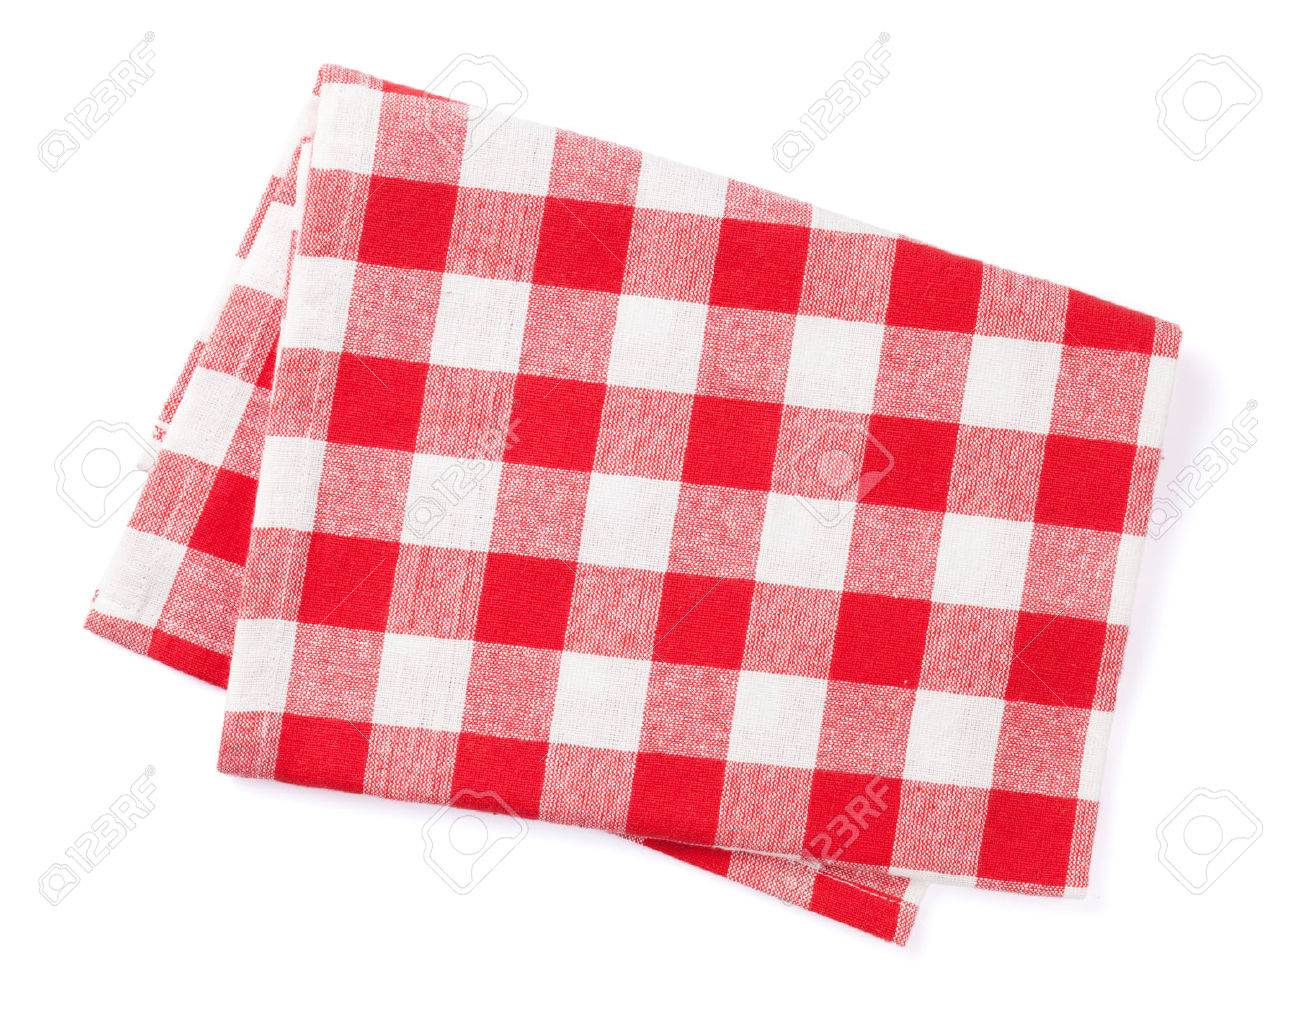 Kitchen towel. Isolated on white background - 50873564